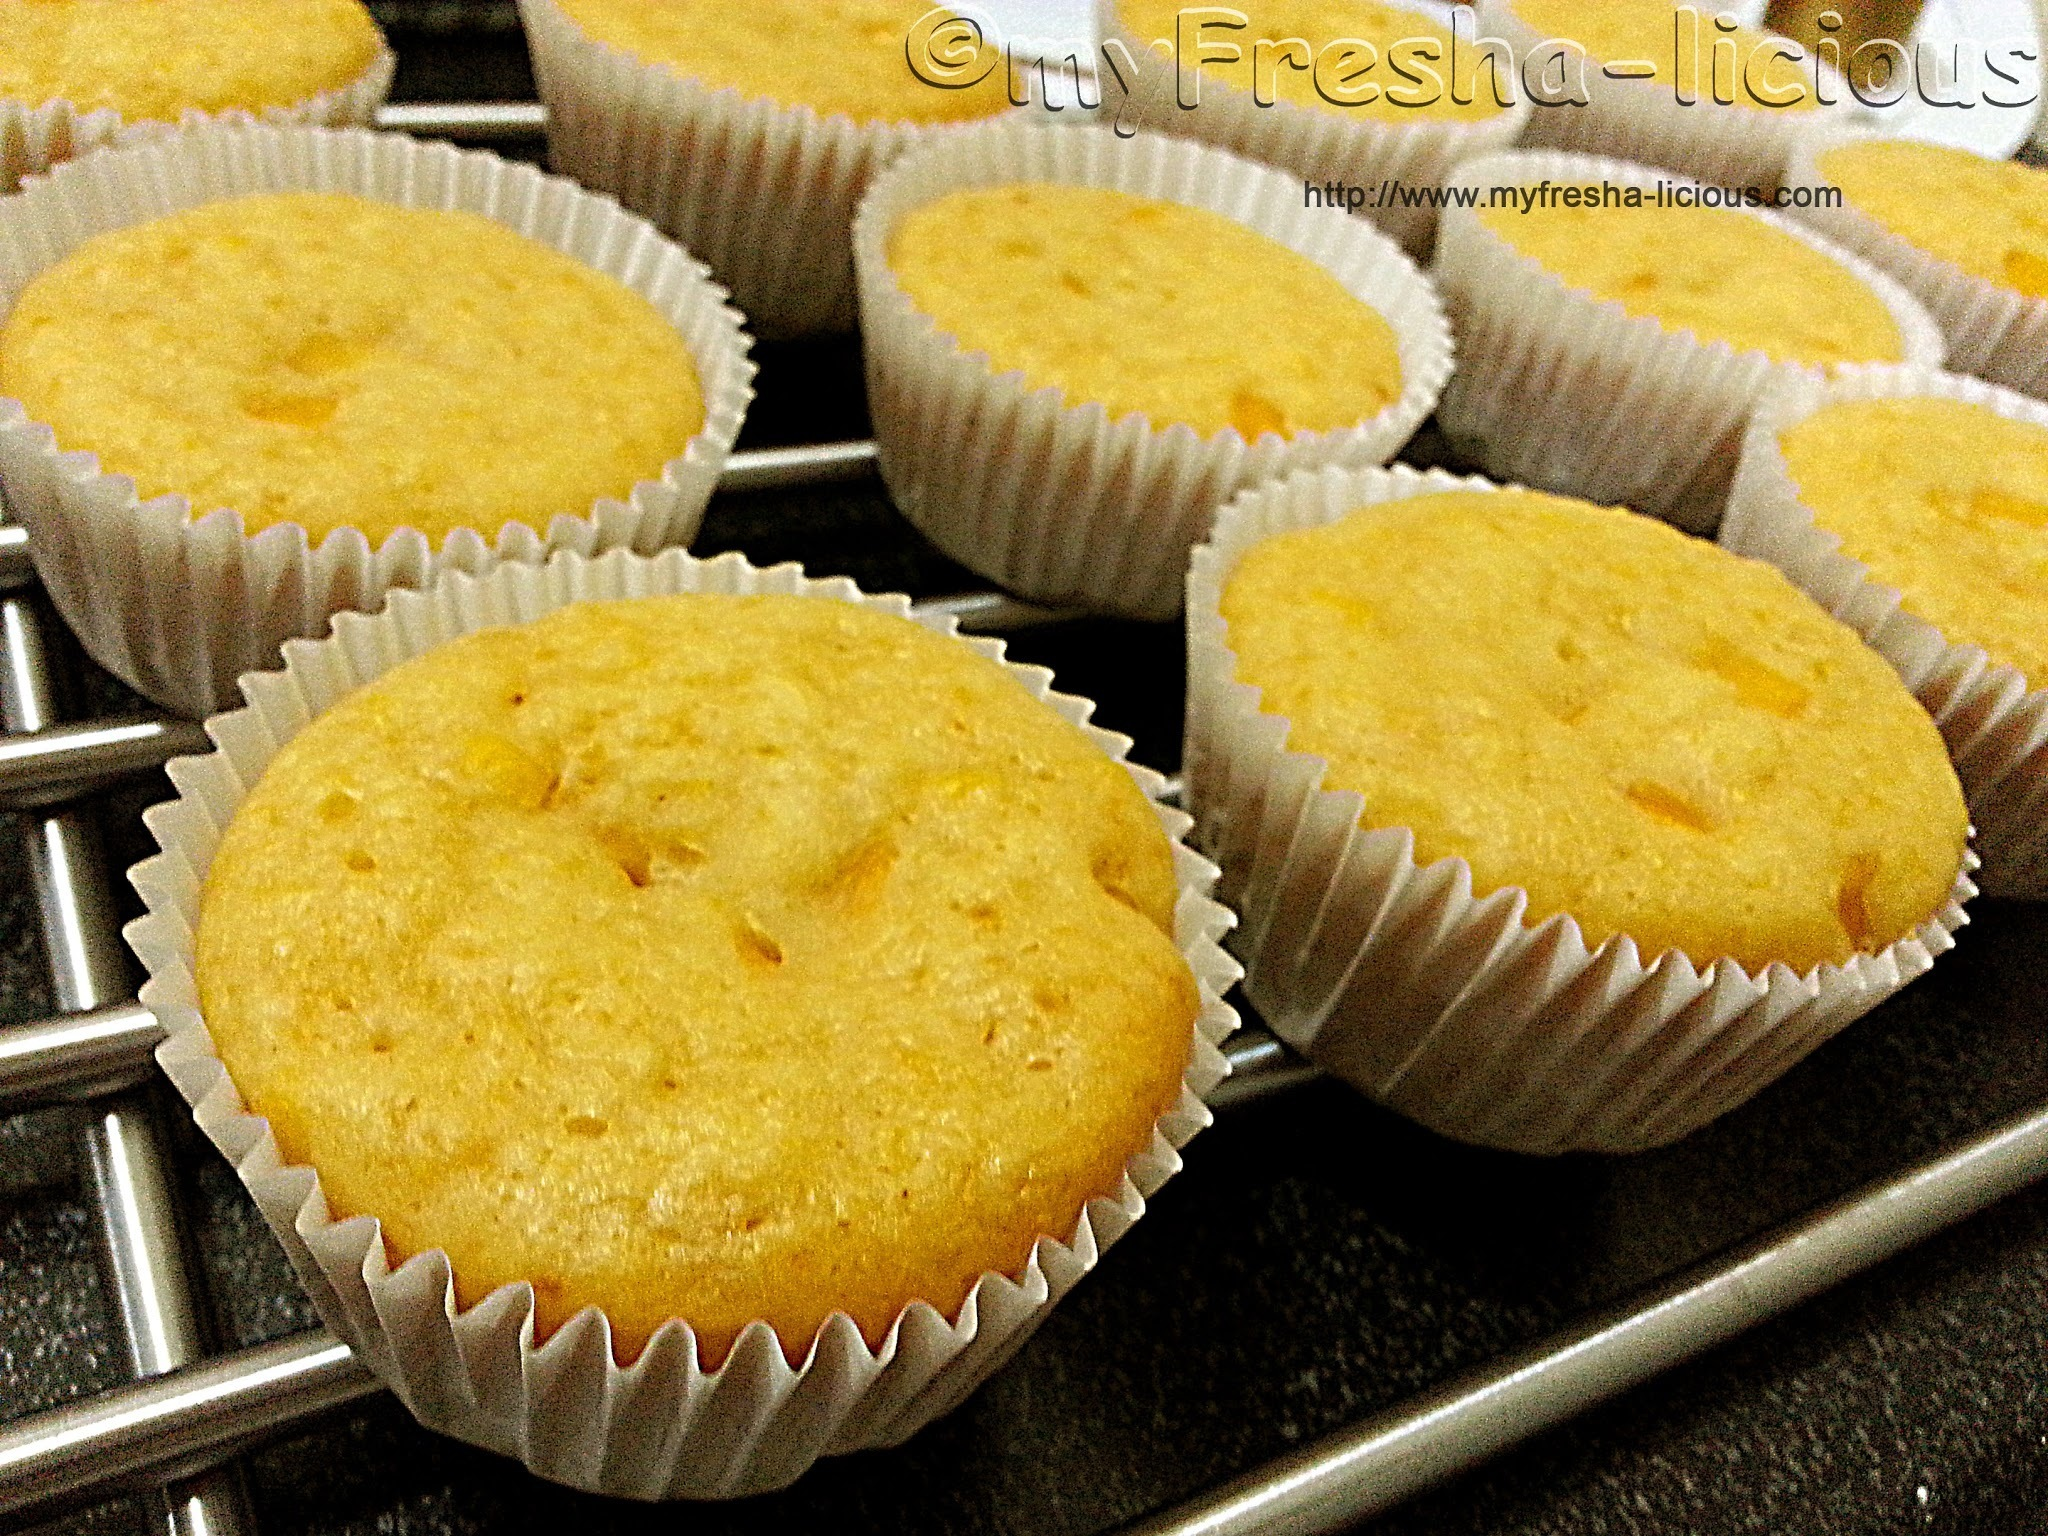 Corn Muffins Using Whole Corn Kernels